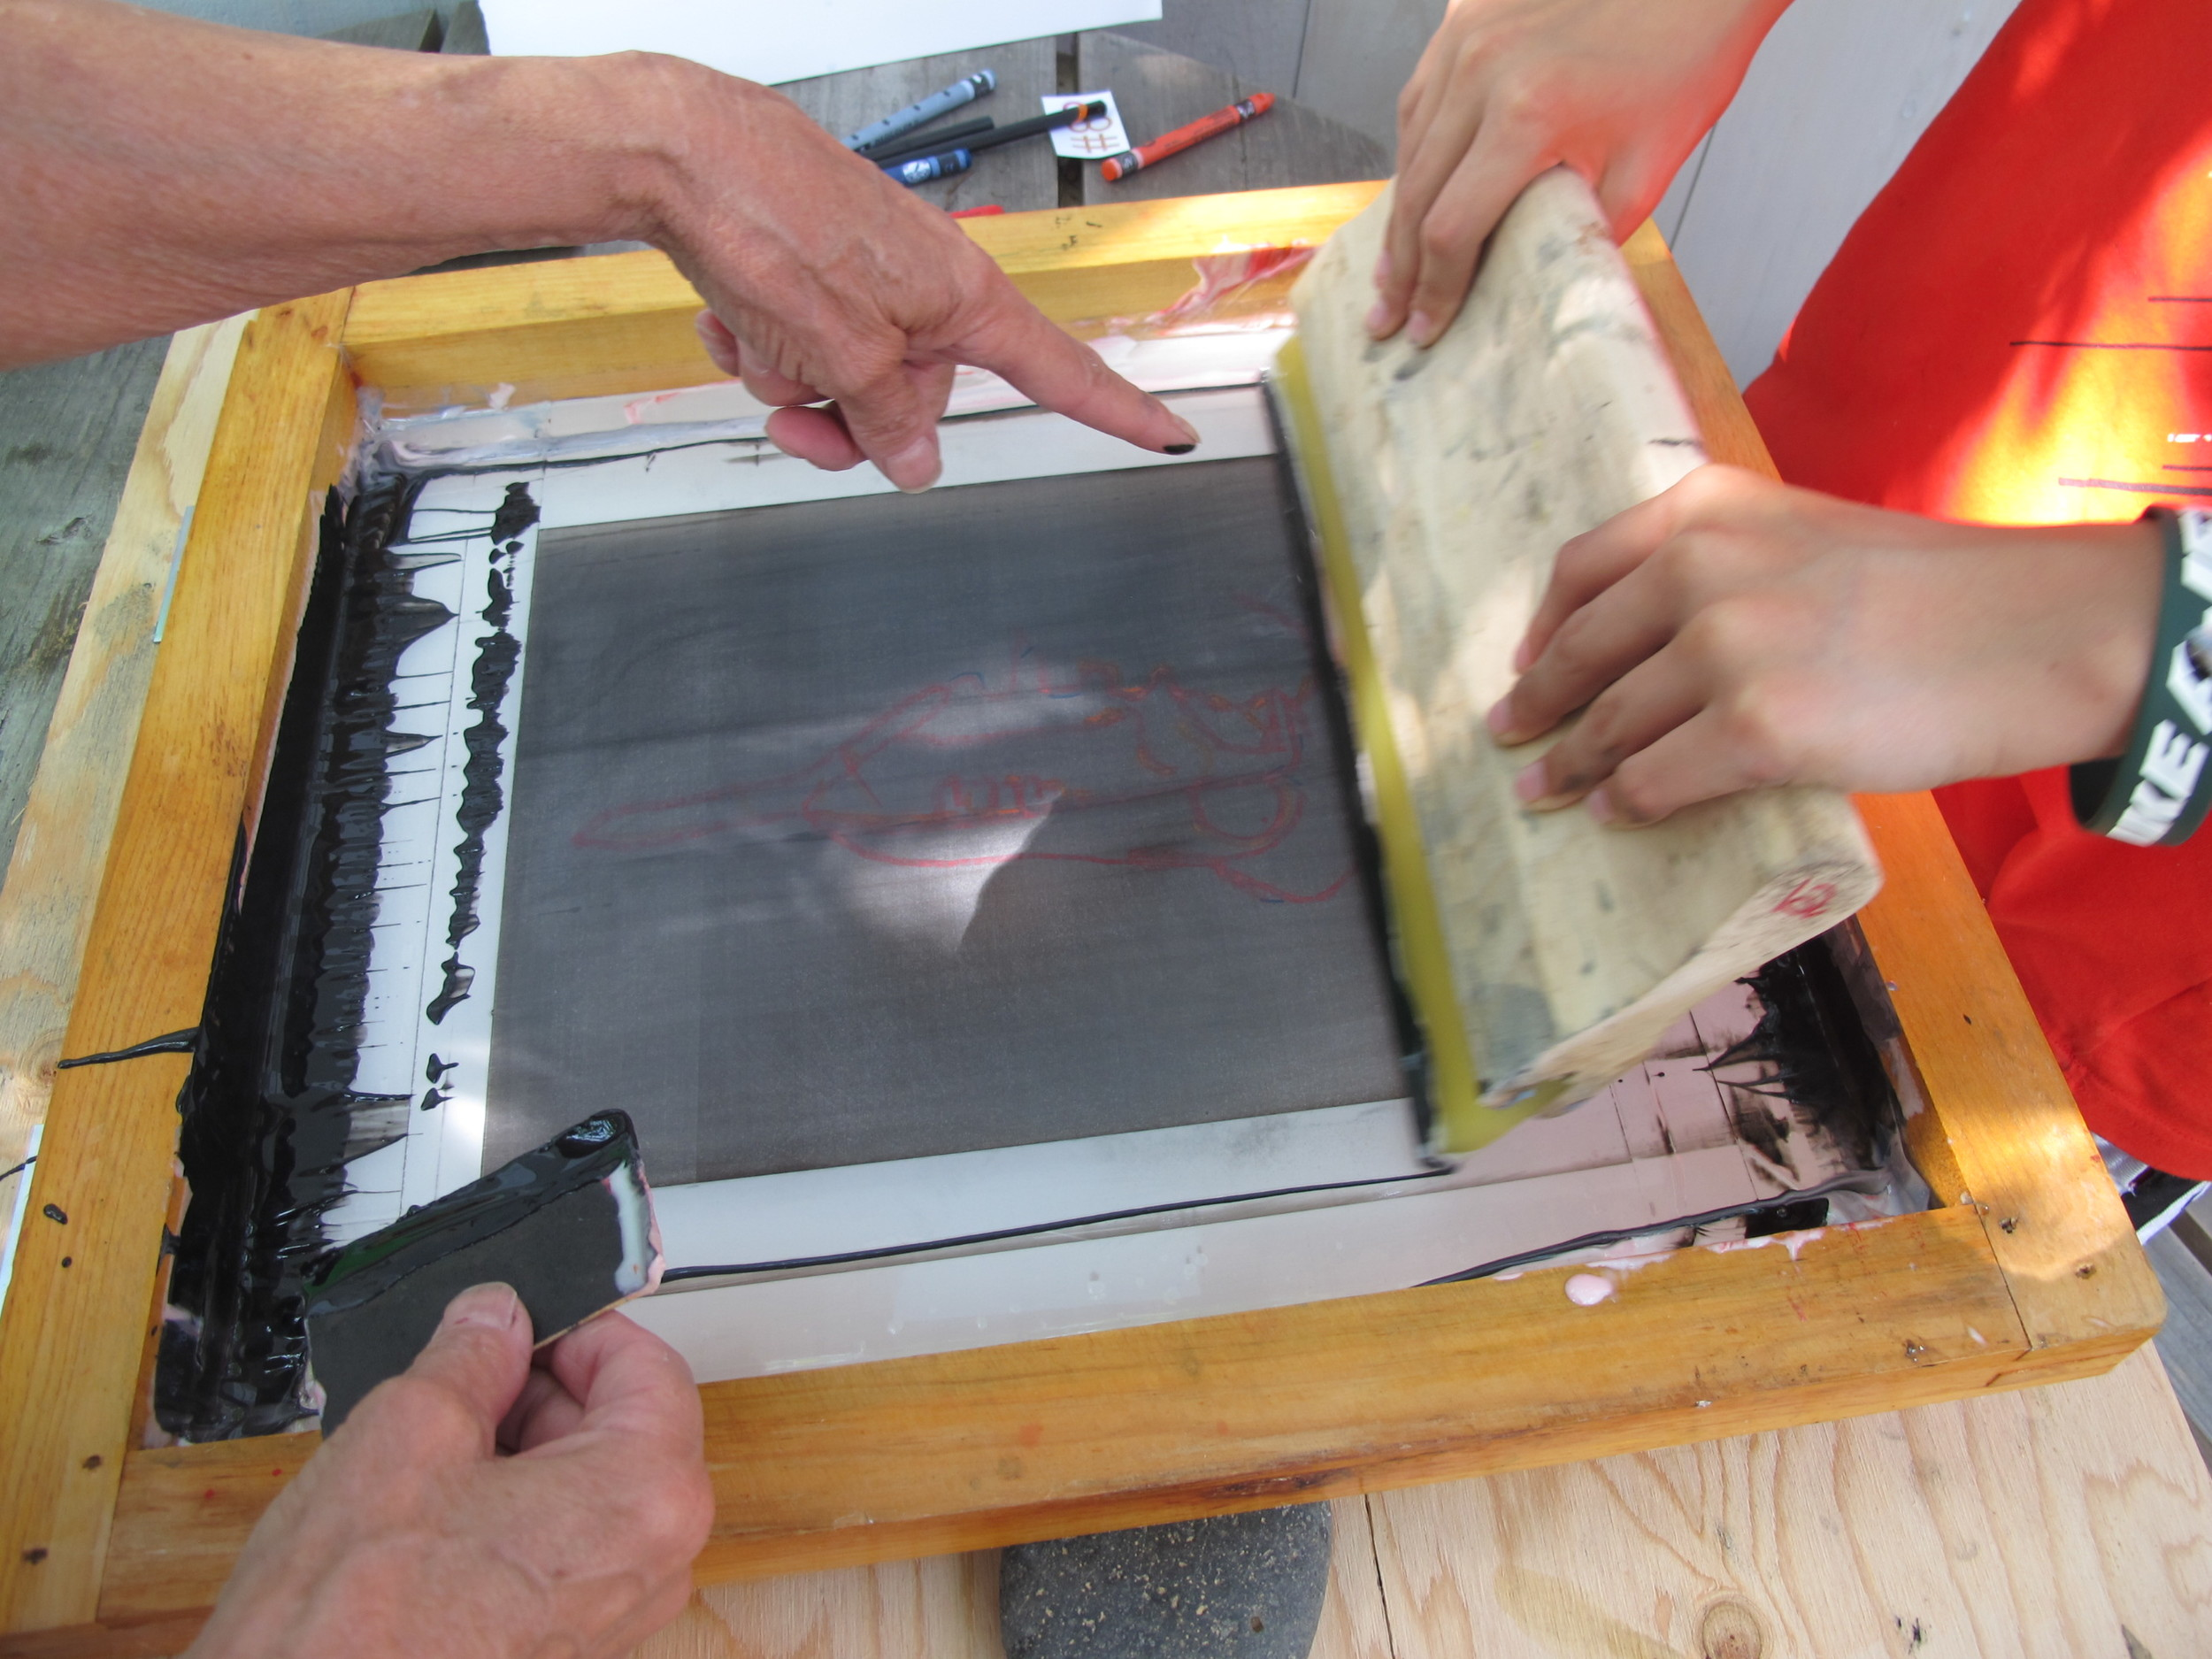 I wasn't able to take the workshop myself, so I'm not going to explain how it all works—though it was fun to watch. To learn more about water-based monoprinting, go to this youtube video of Roni demonstrating it on television: